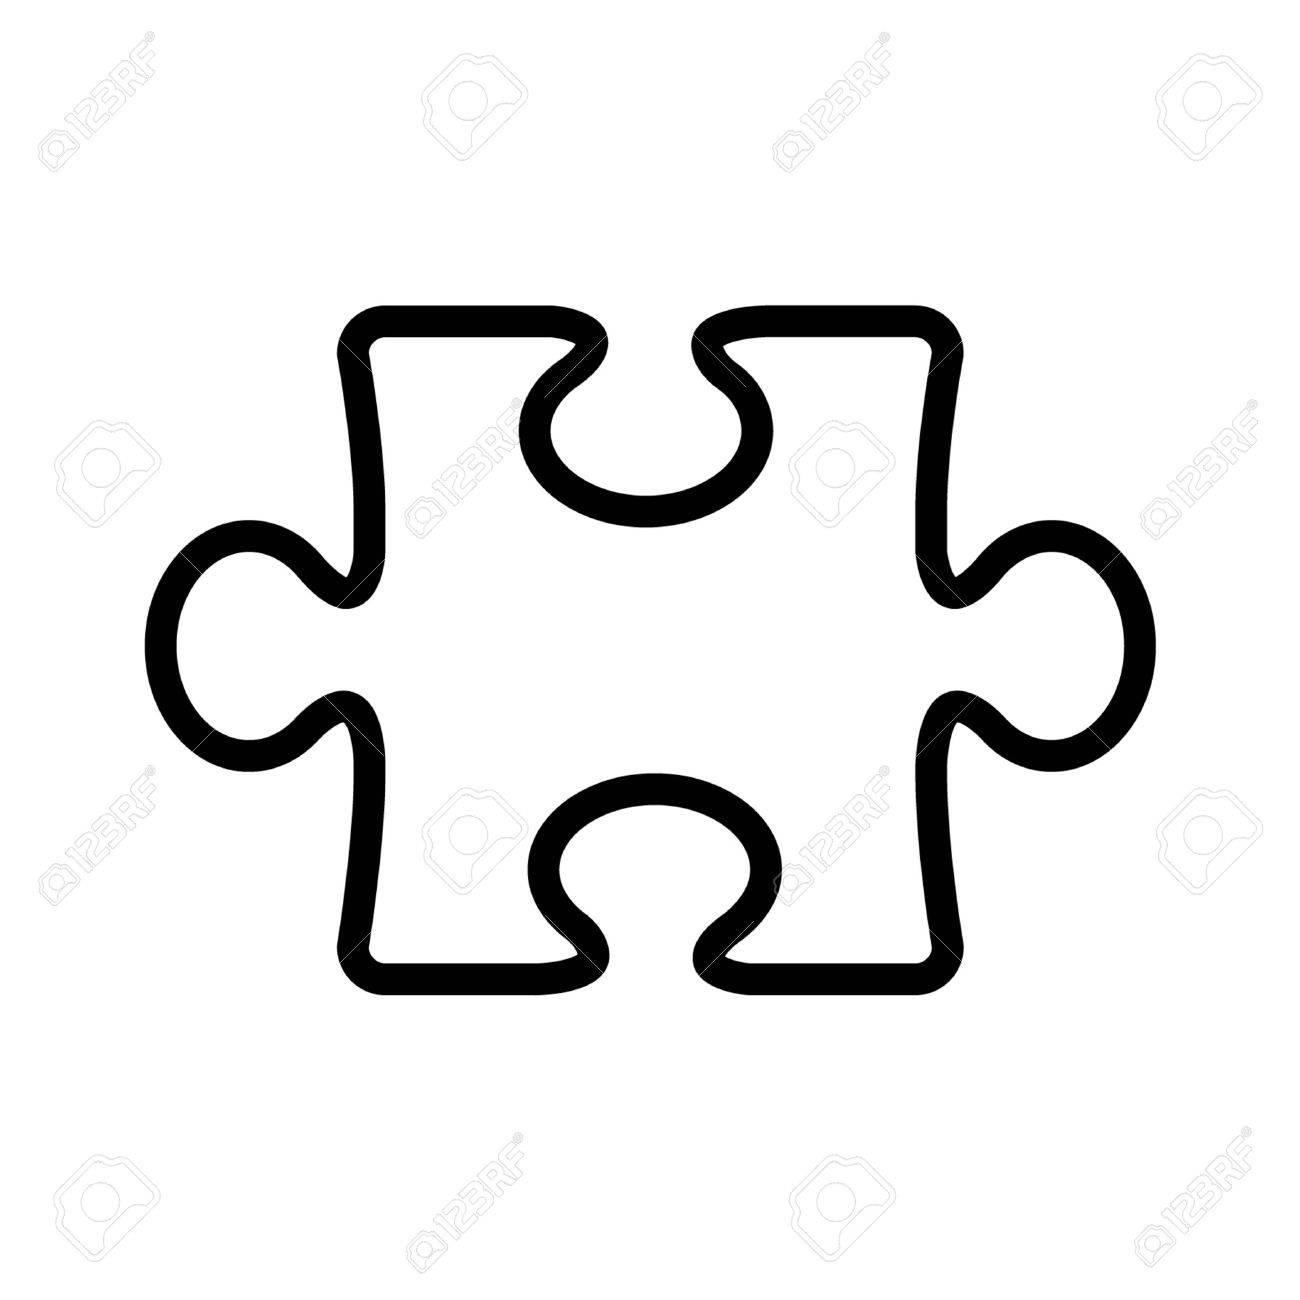 Puzzle piece line art icon for apps and websites - 42620734